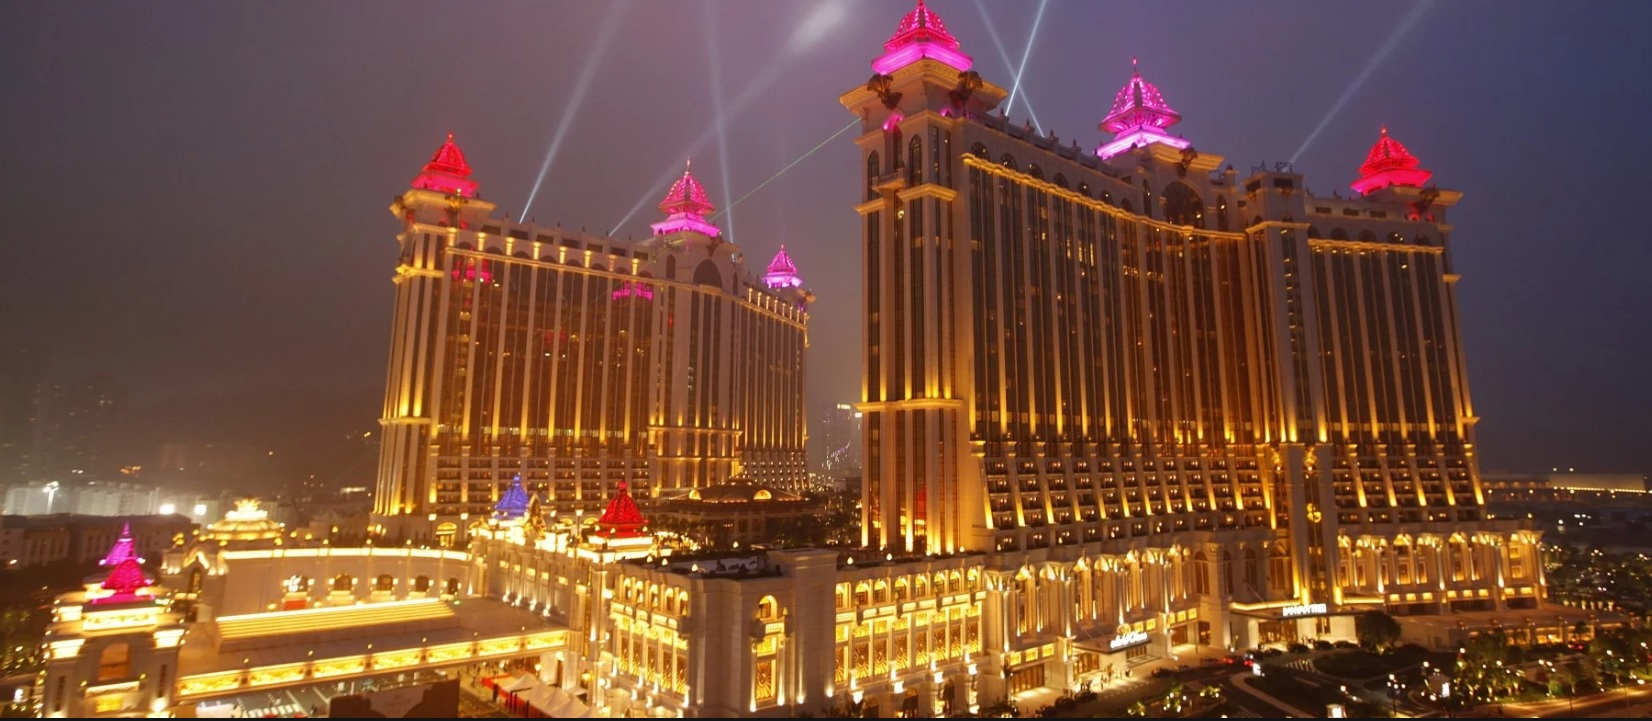 What not to do in casinos of Macau?